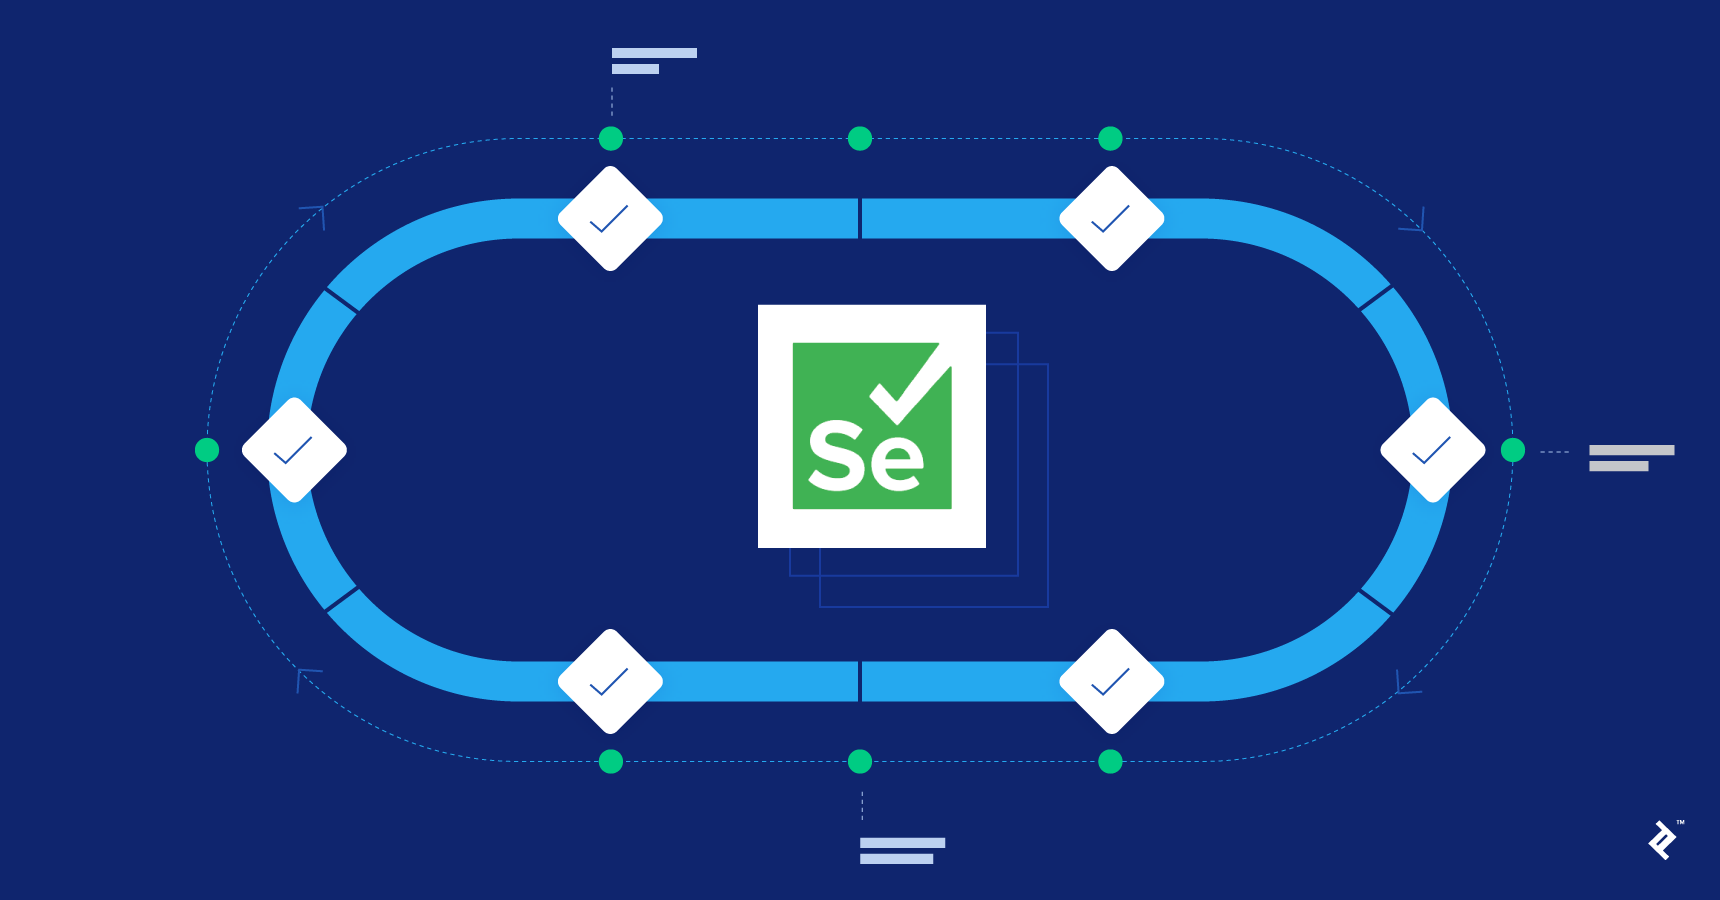 Selenium automation simplifies test automation for web applications